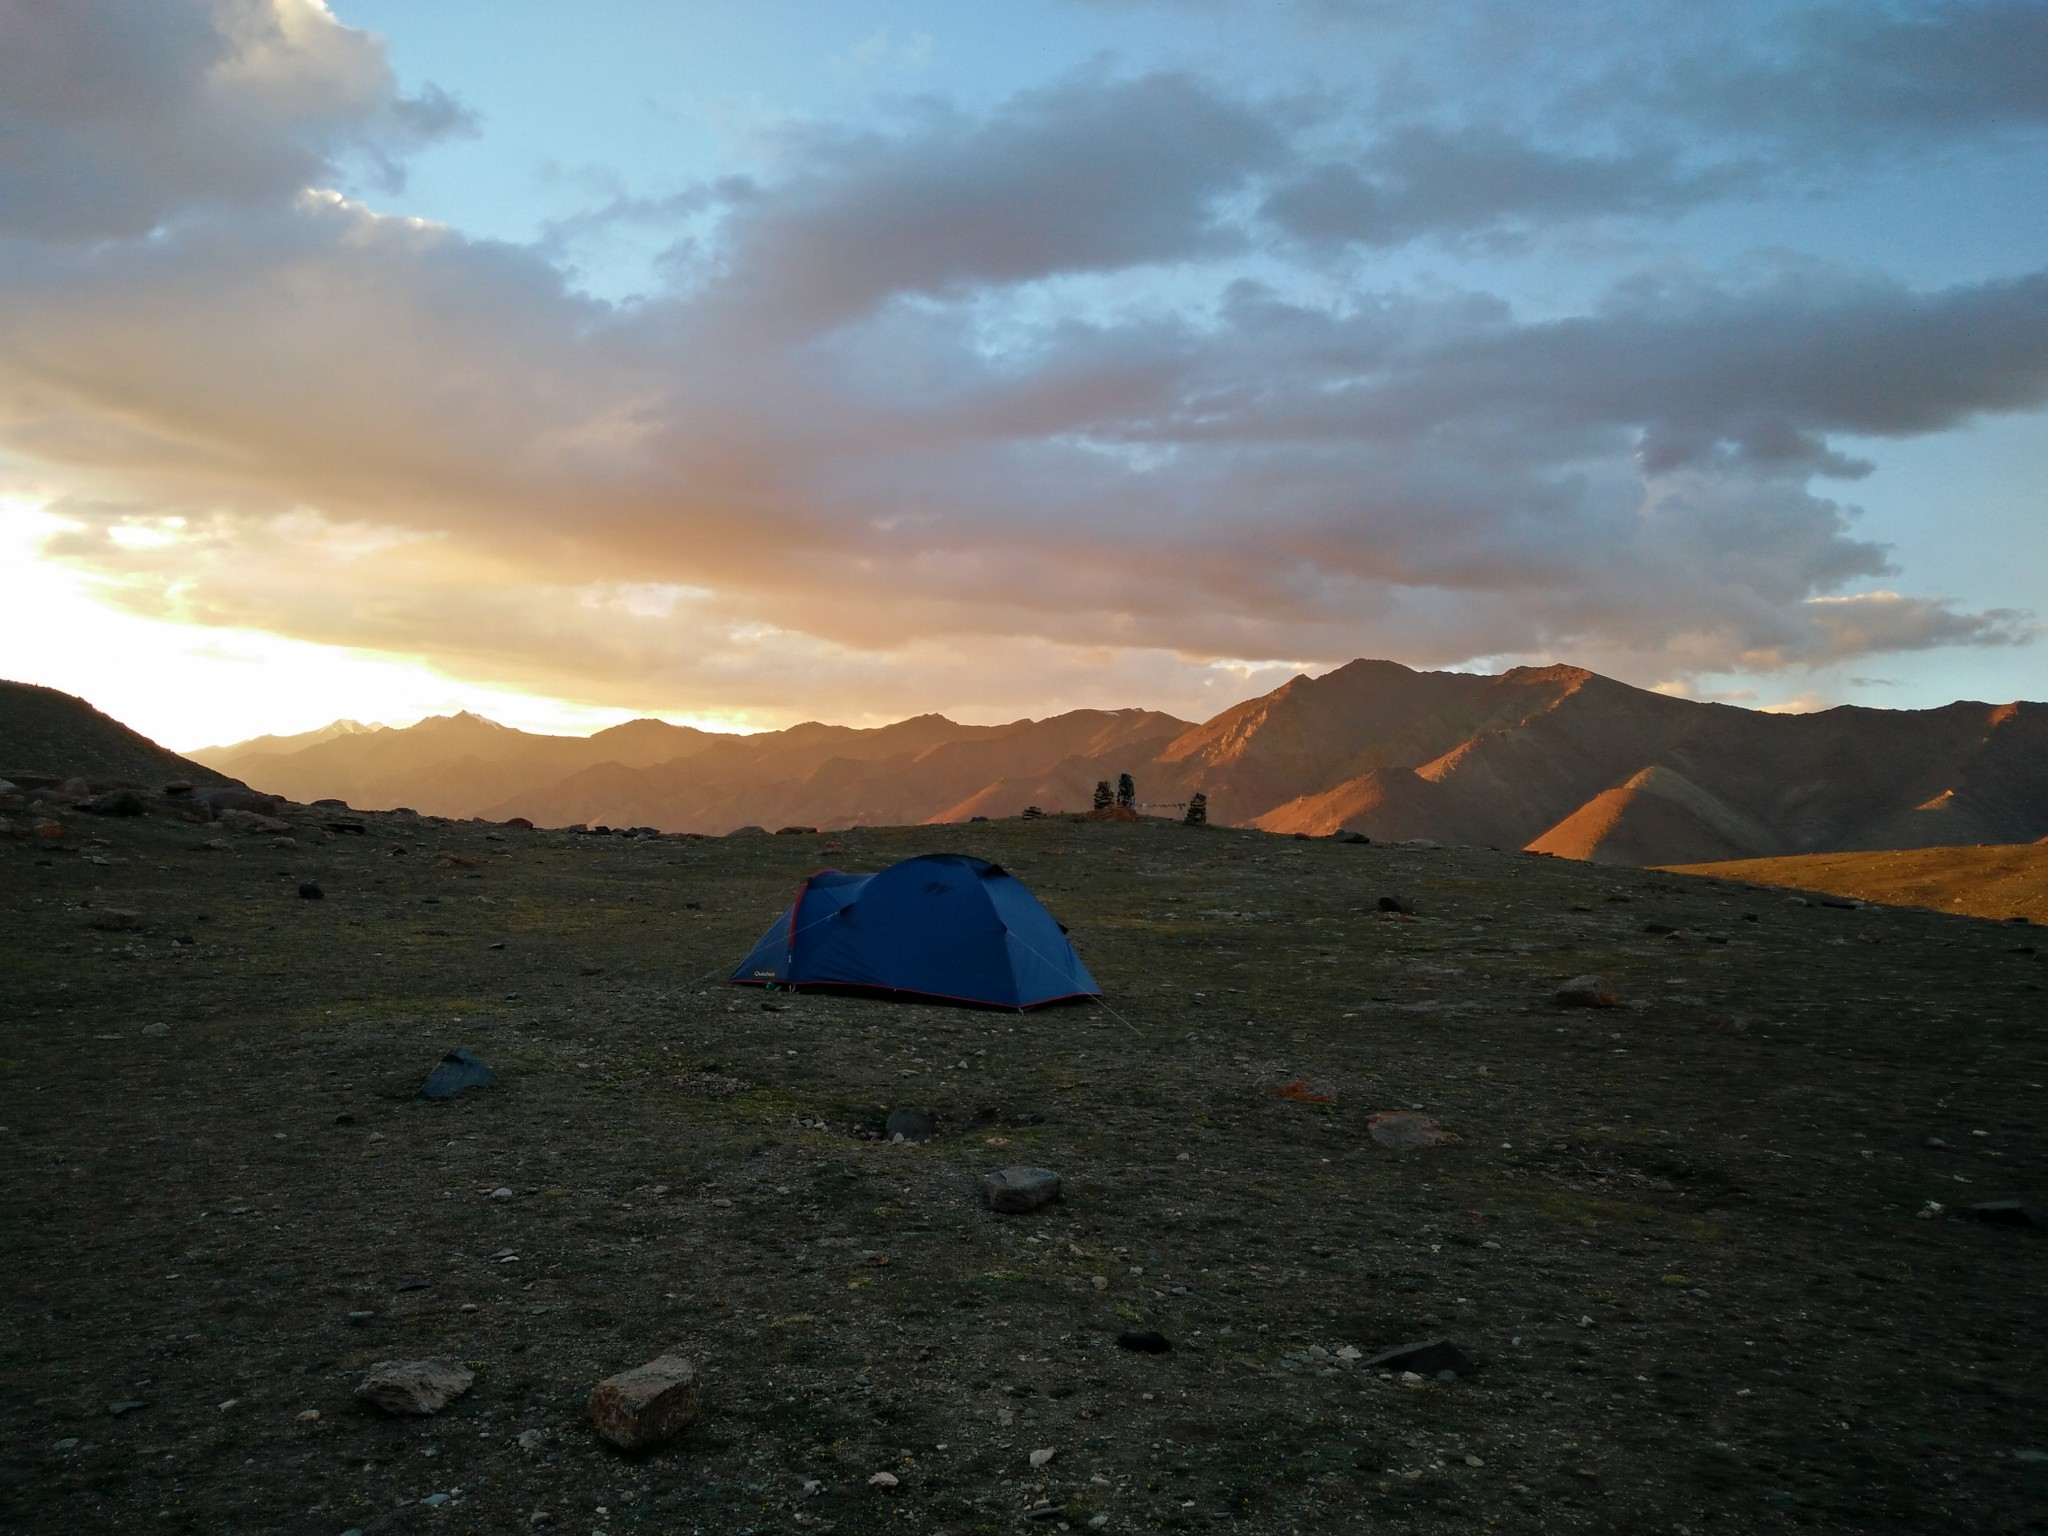 Sunset at Markha Valley